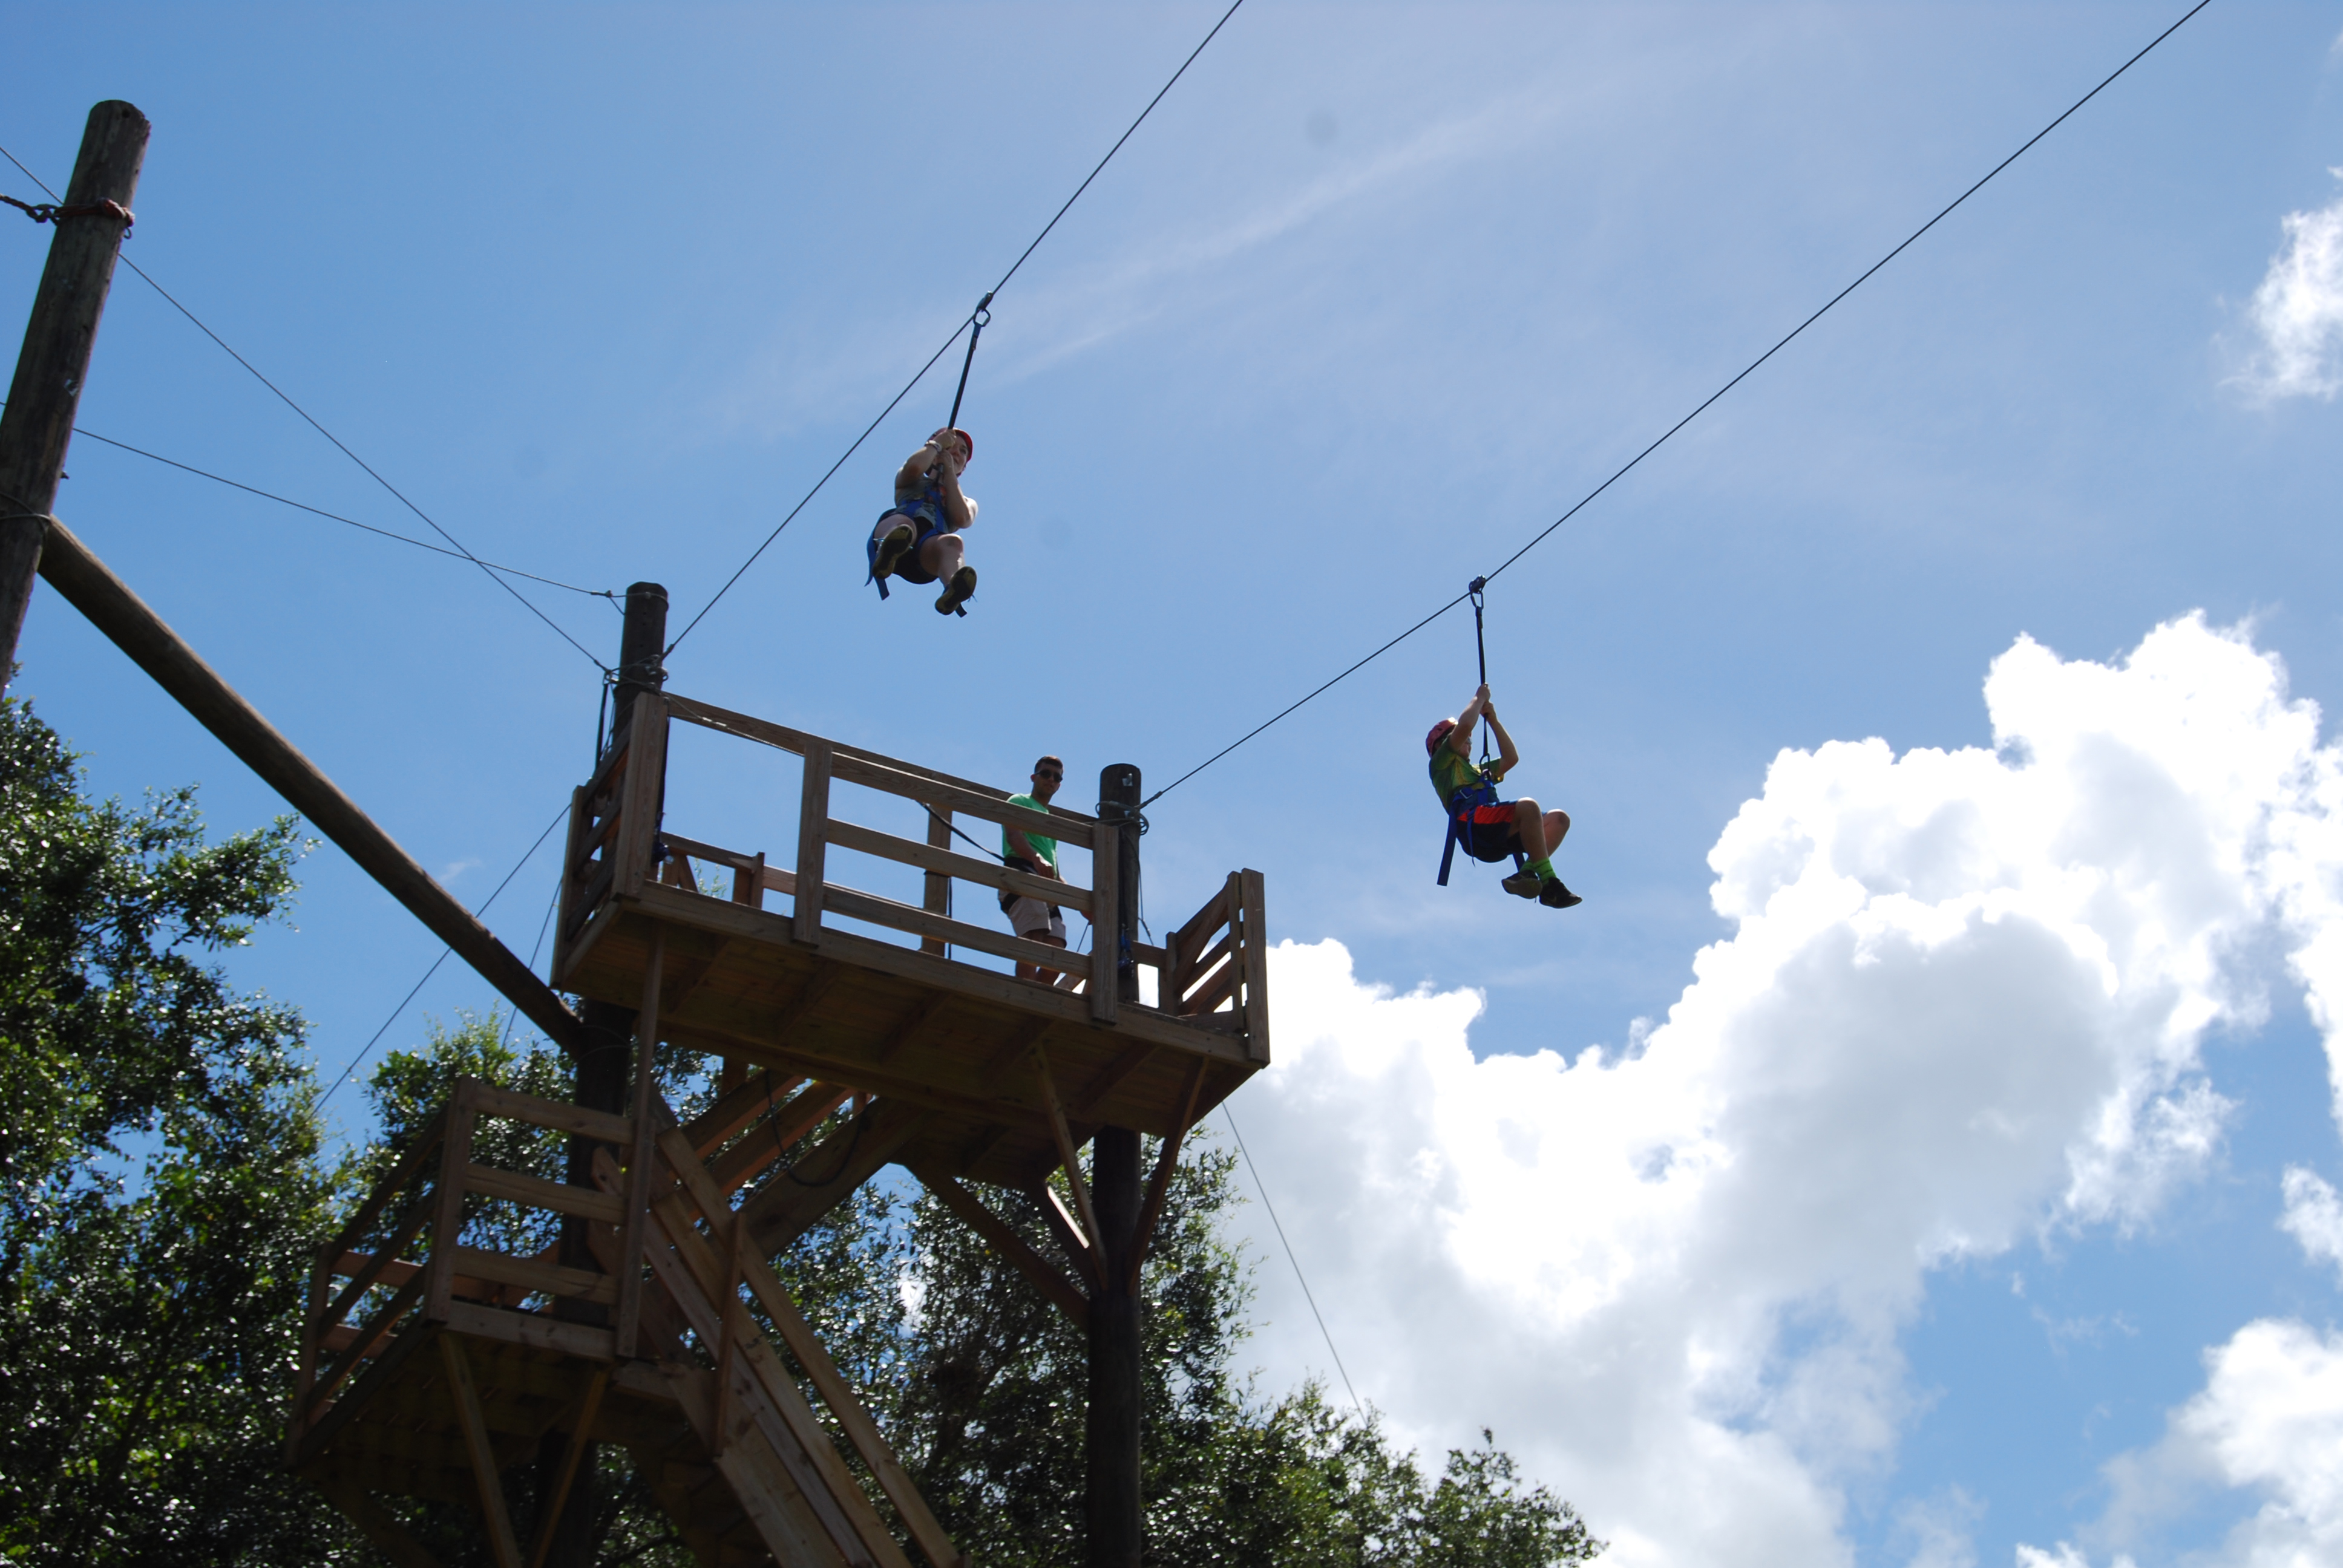 Participants lean on each other to complete high ropes course